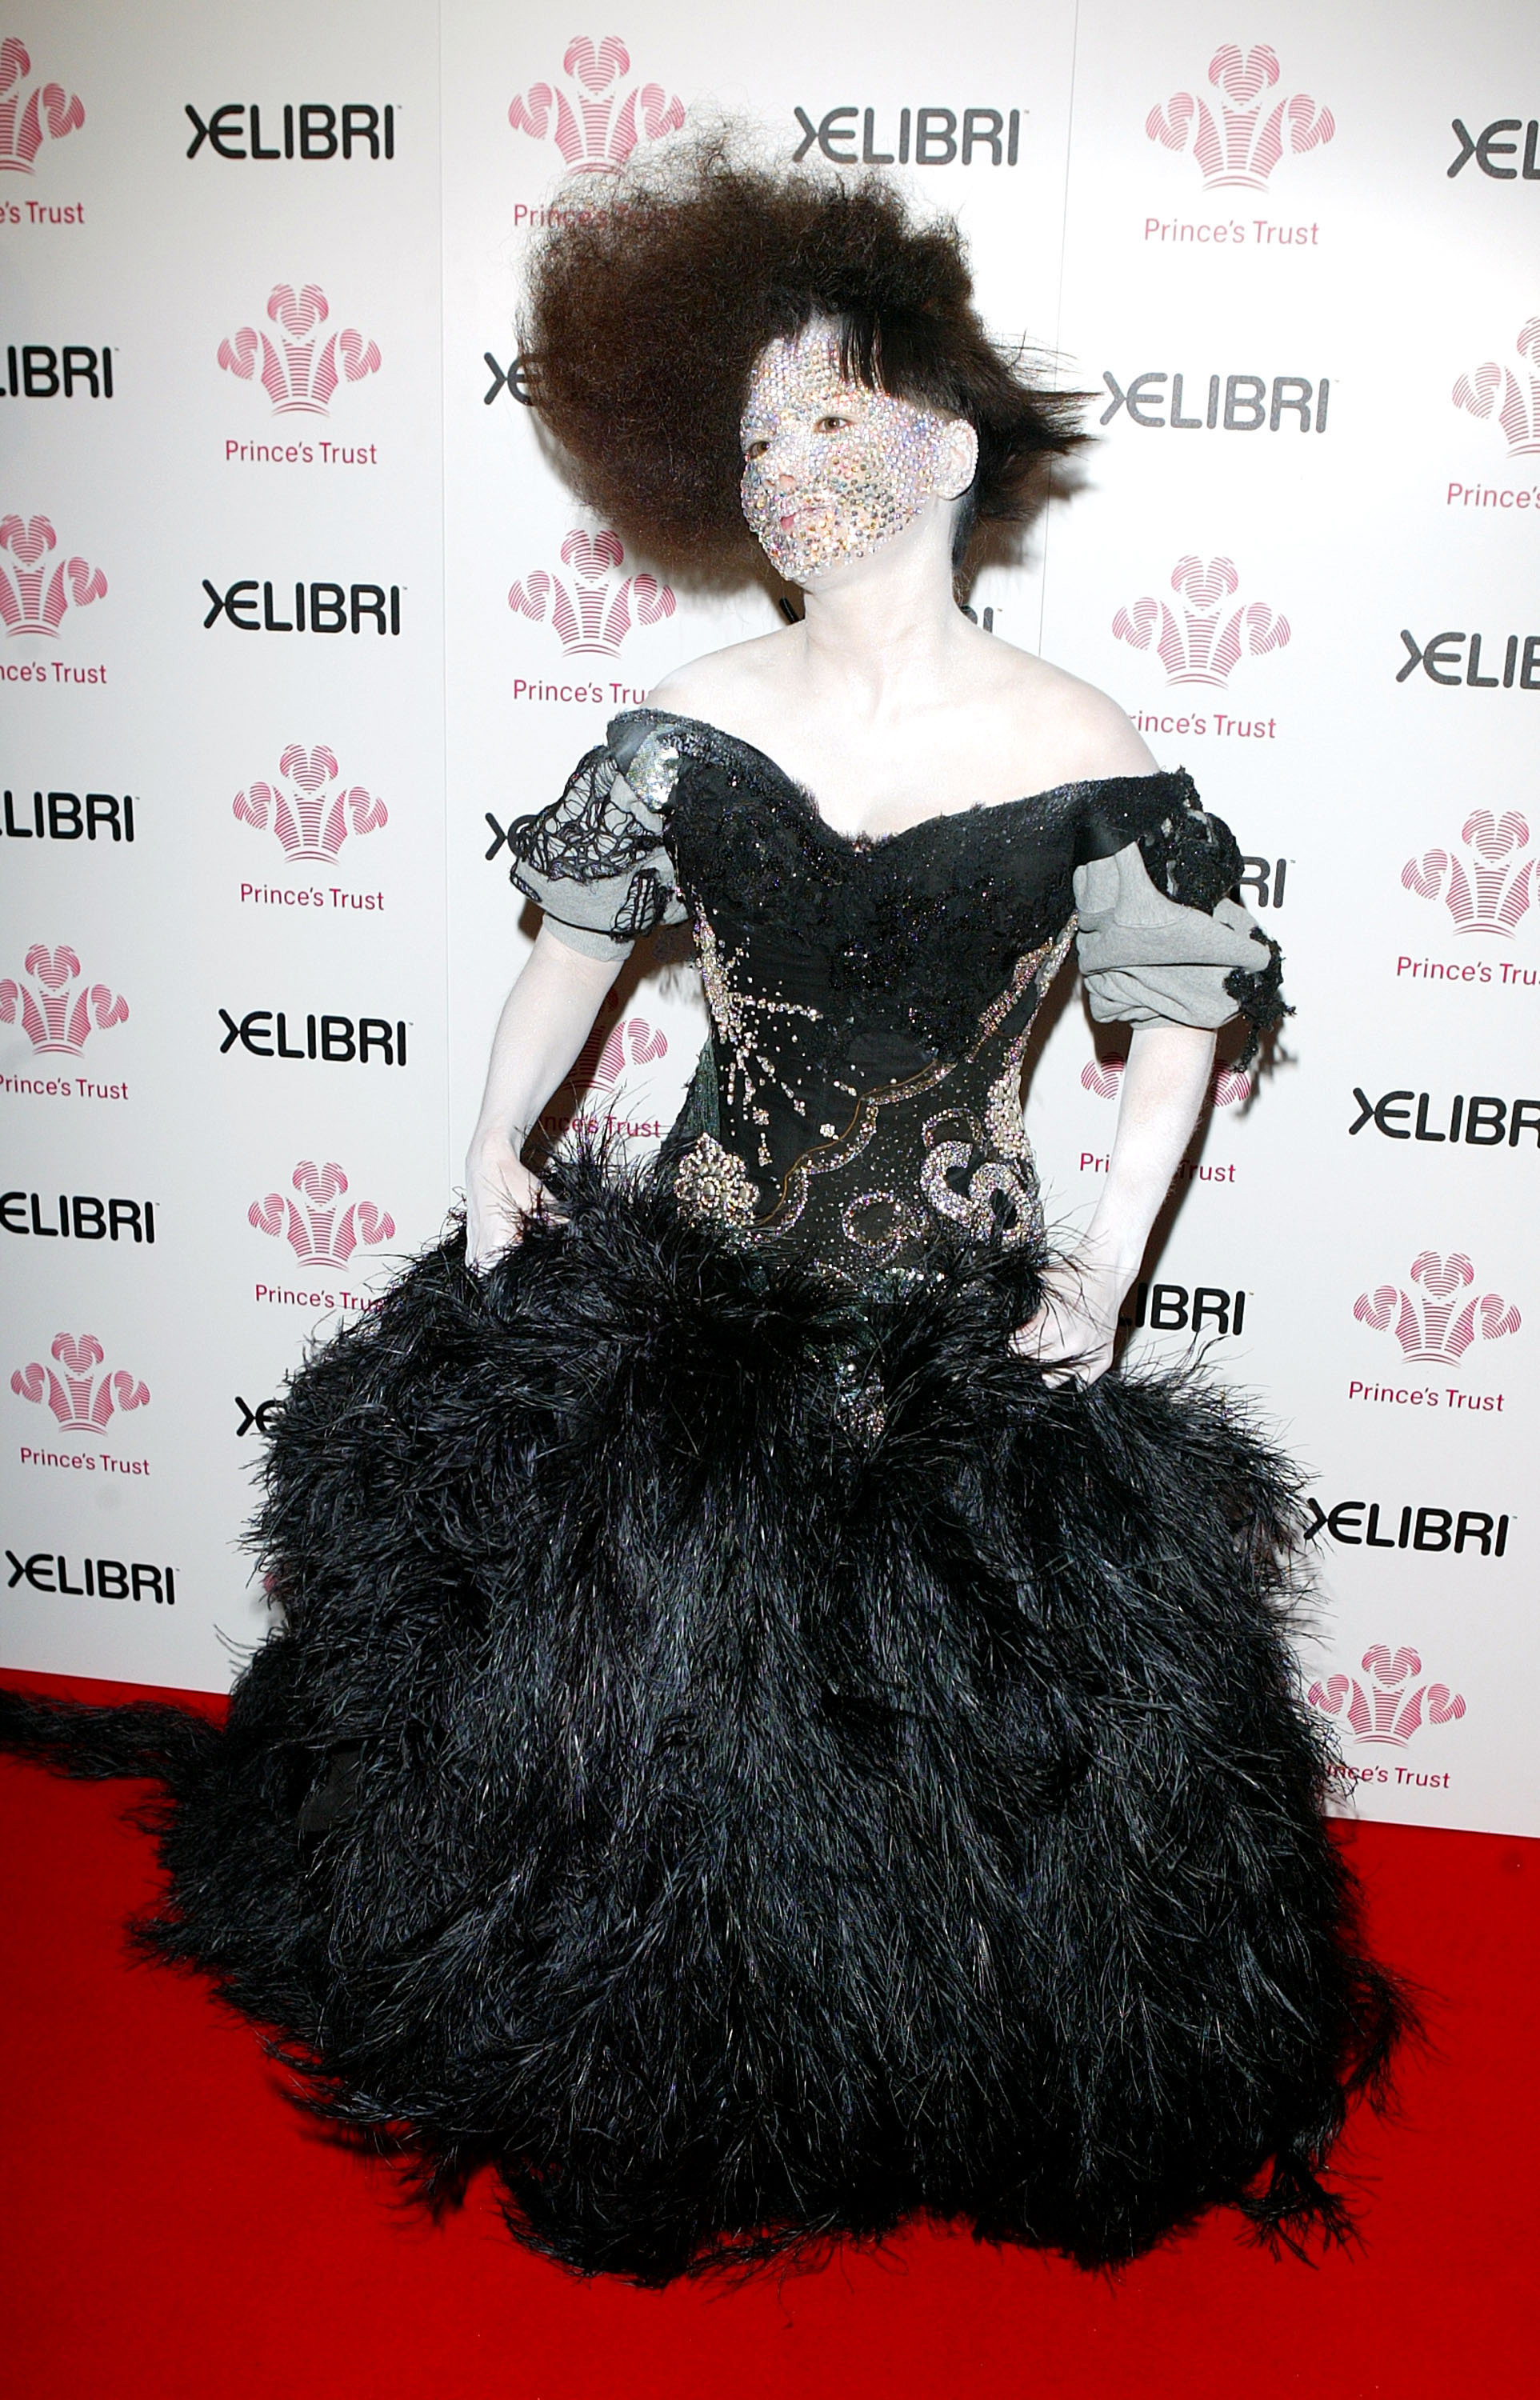 Björk at the Royal Albert Hall in London on Oct. 15, 2003.